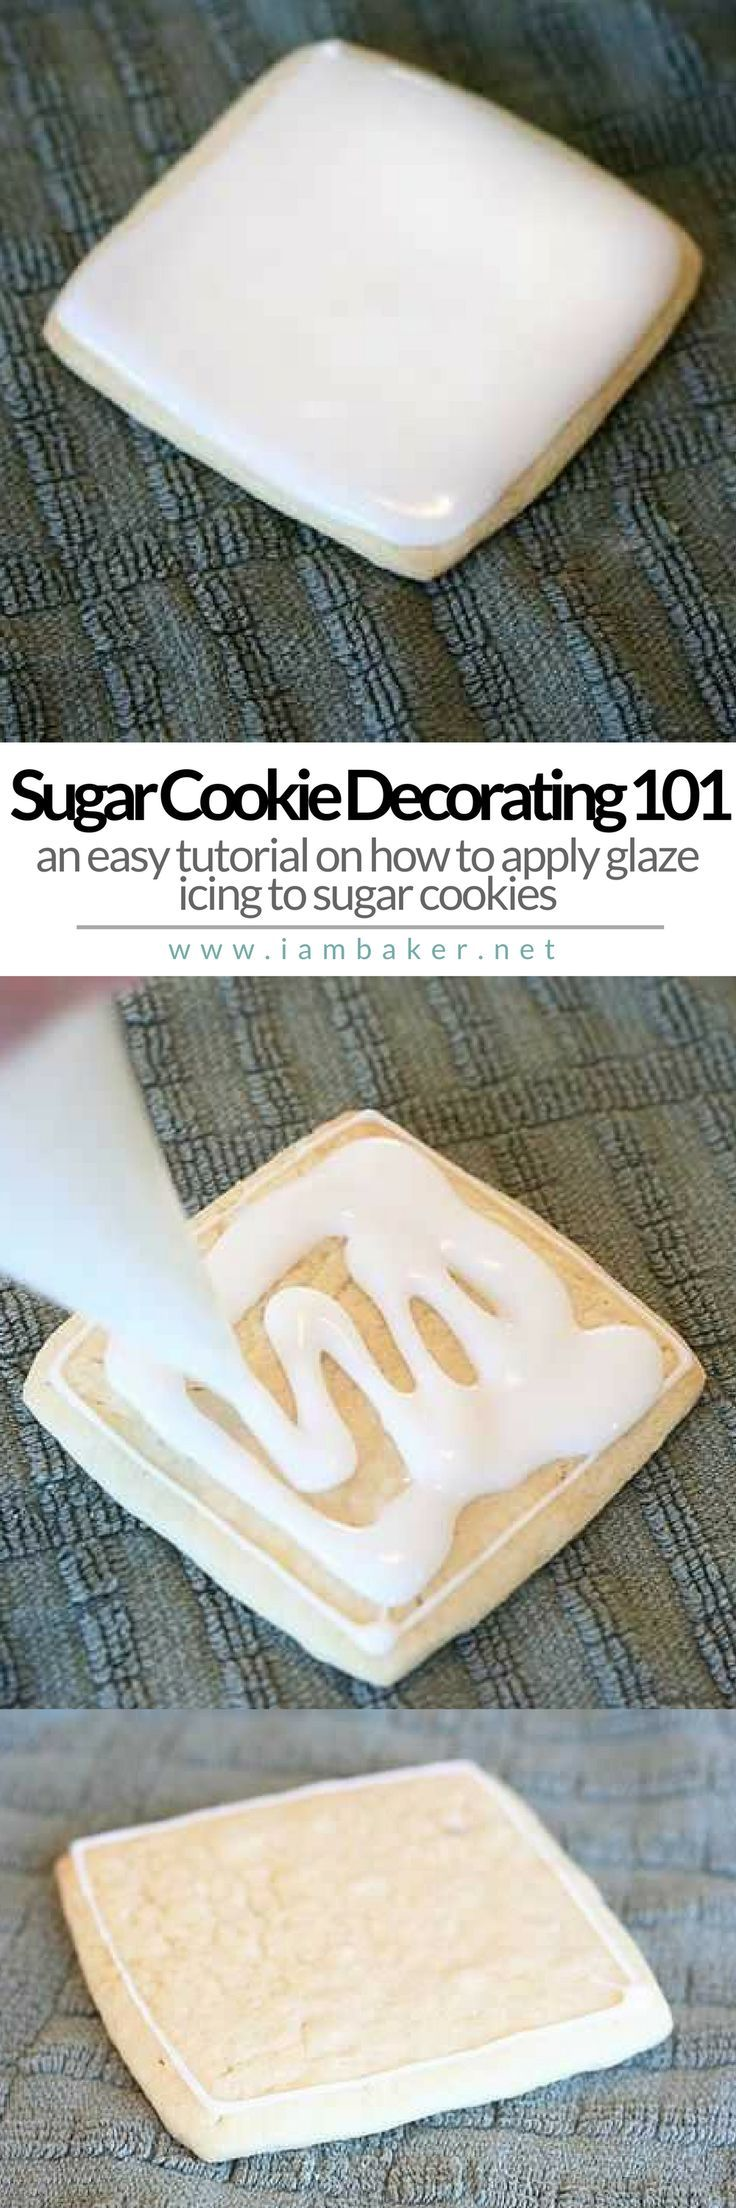 SUGAR COOKIE DECORATING 101 | If you're looking for easy sugar cookie decorating tutorials, you're in the right place. Learn how to apply your glaze icing to your sugar cookies by clicking the pin.  For more simple and easy dessert recipes to make, check us out at #iambaker. #foodlover #desserts #yummydesserts #recipeoftheday #cookies #sugarcookies